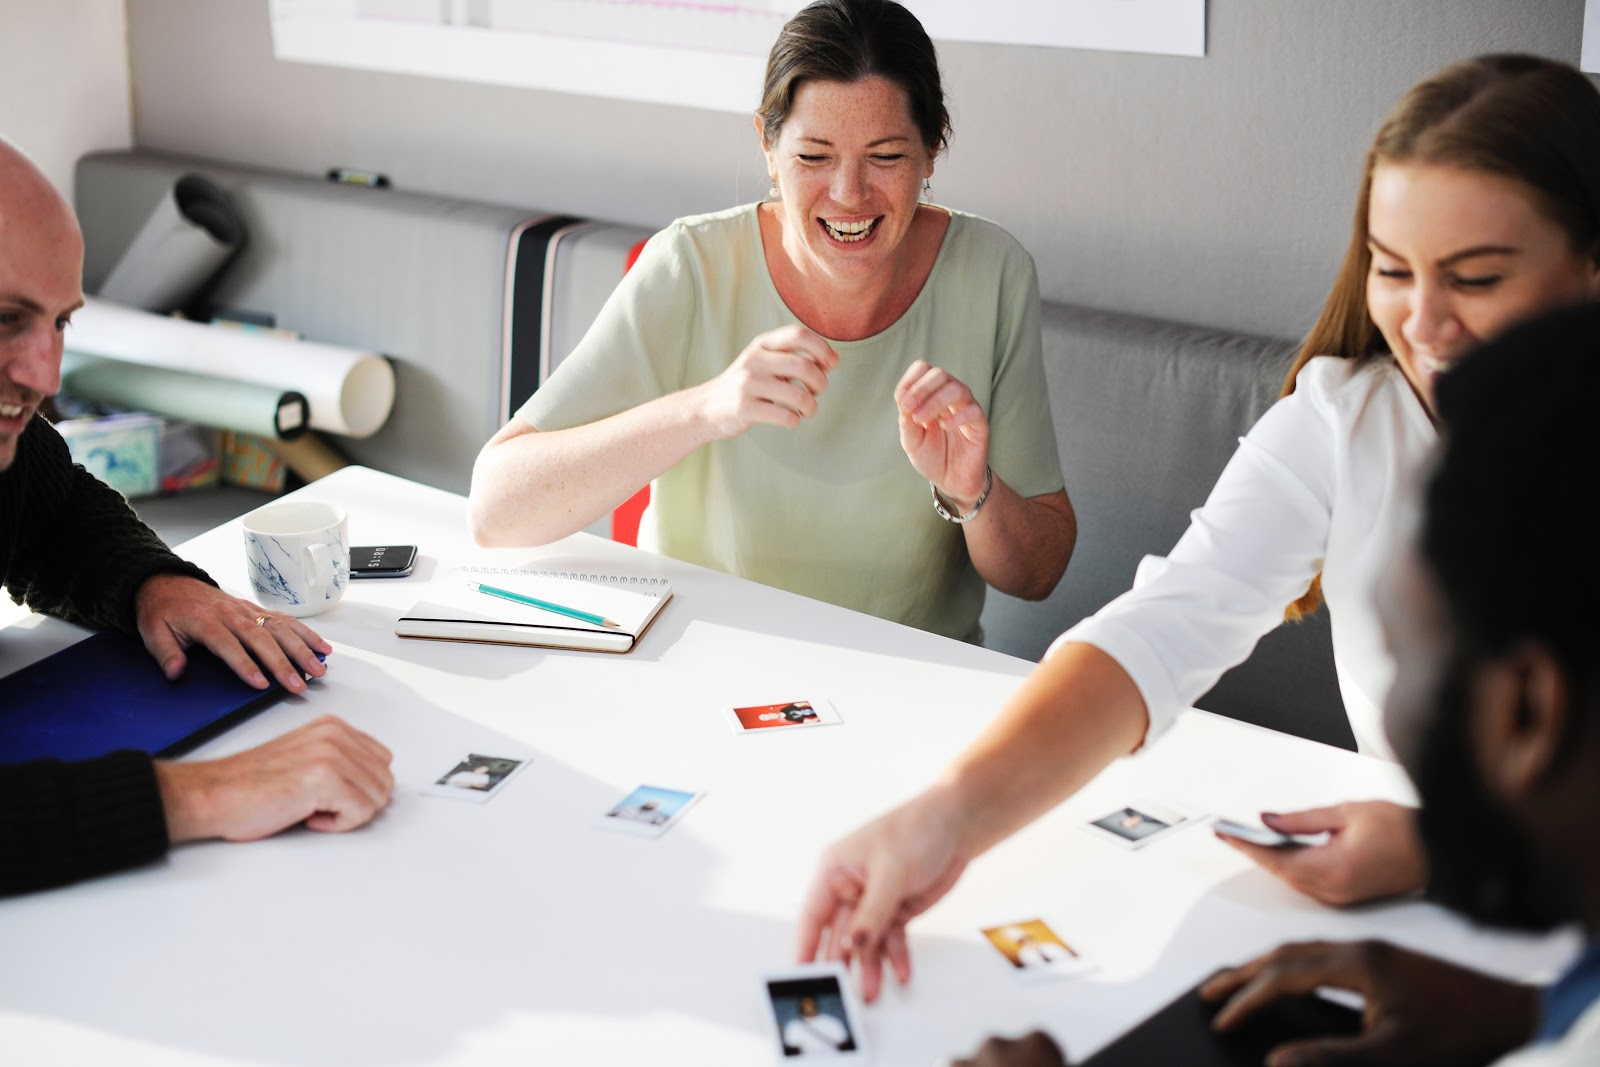 collaboration skills in the workplace